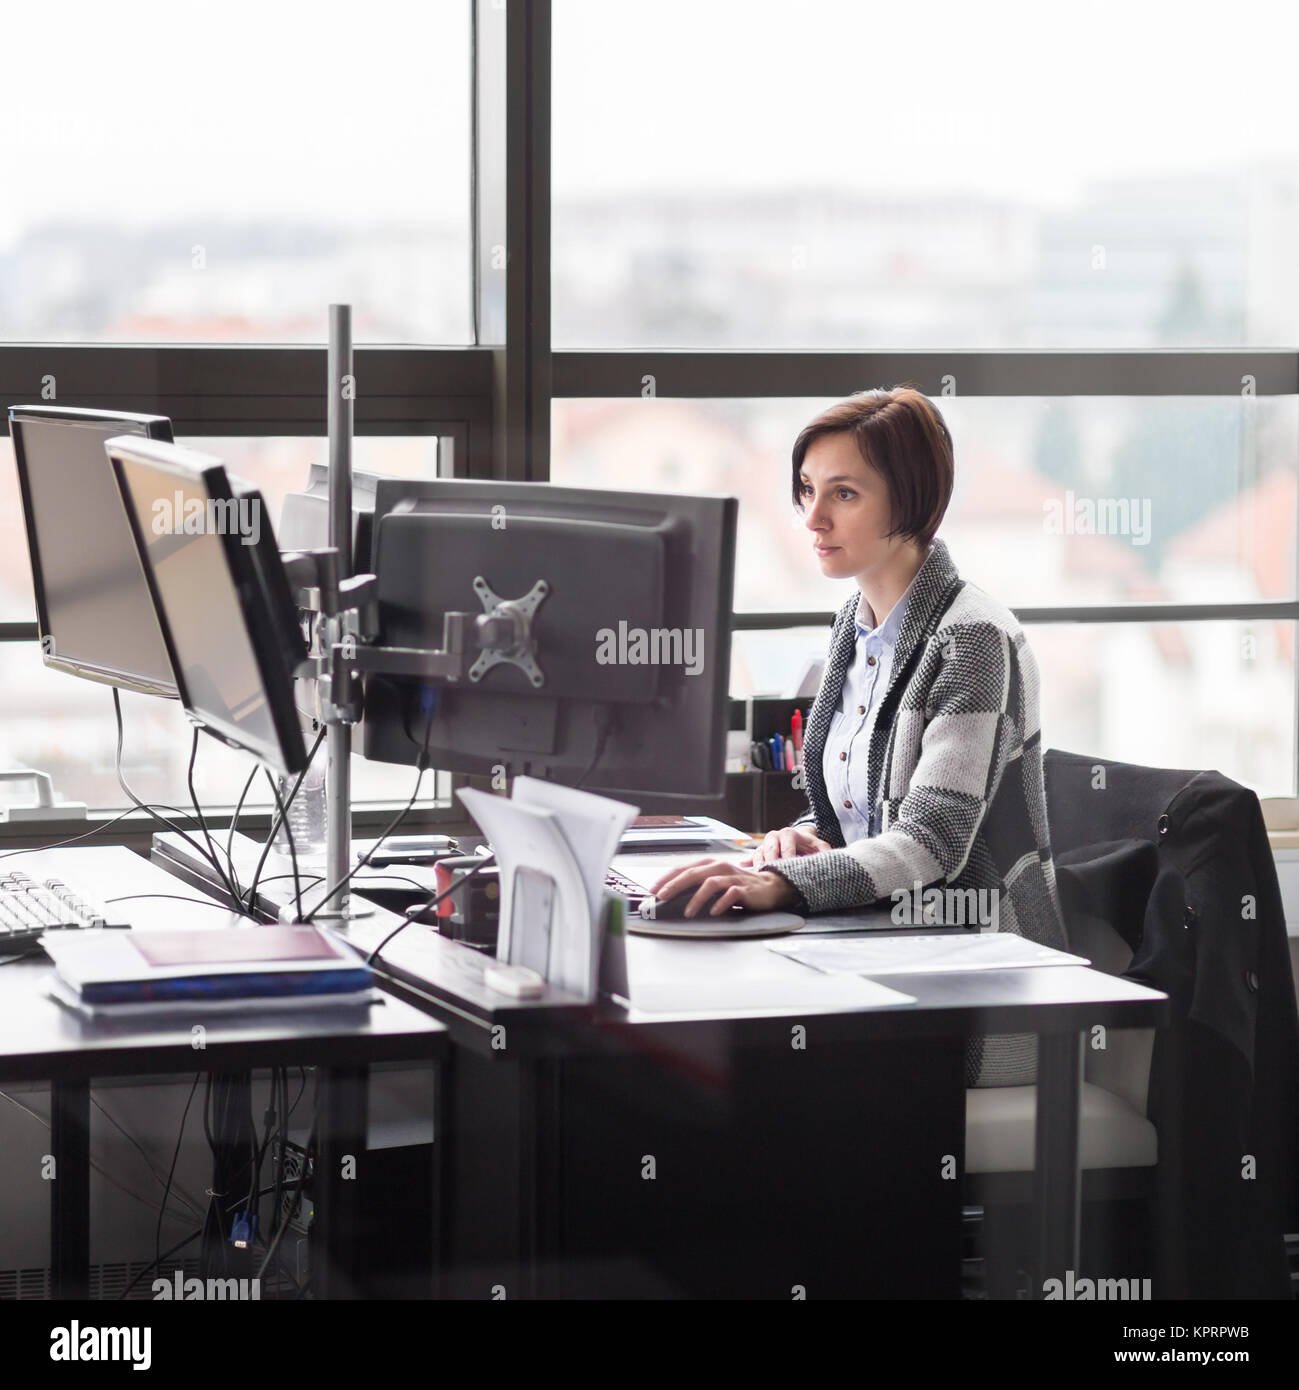 Business woman working in corporate office. - Stock Image